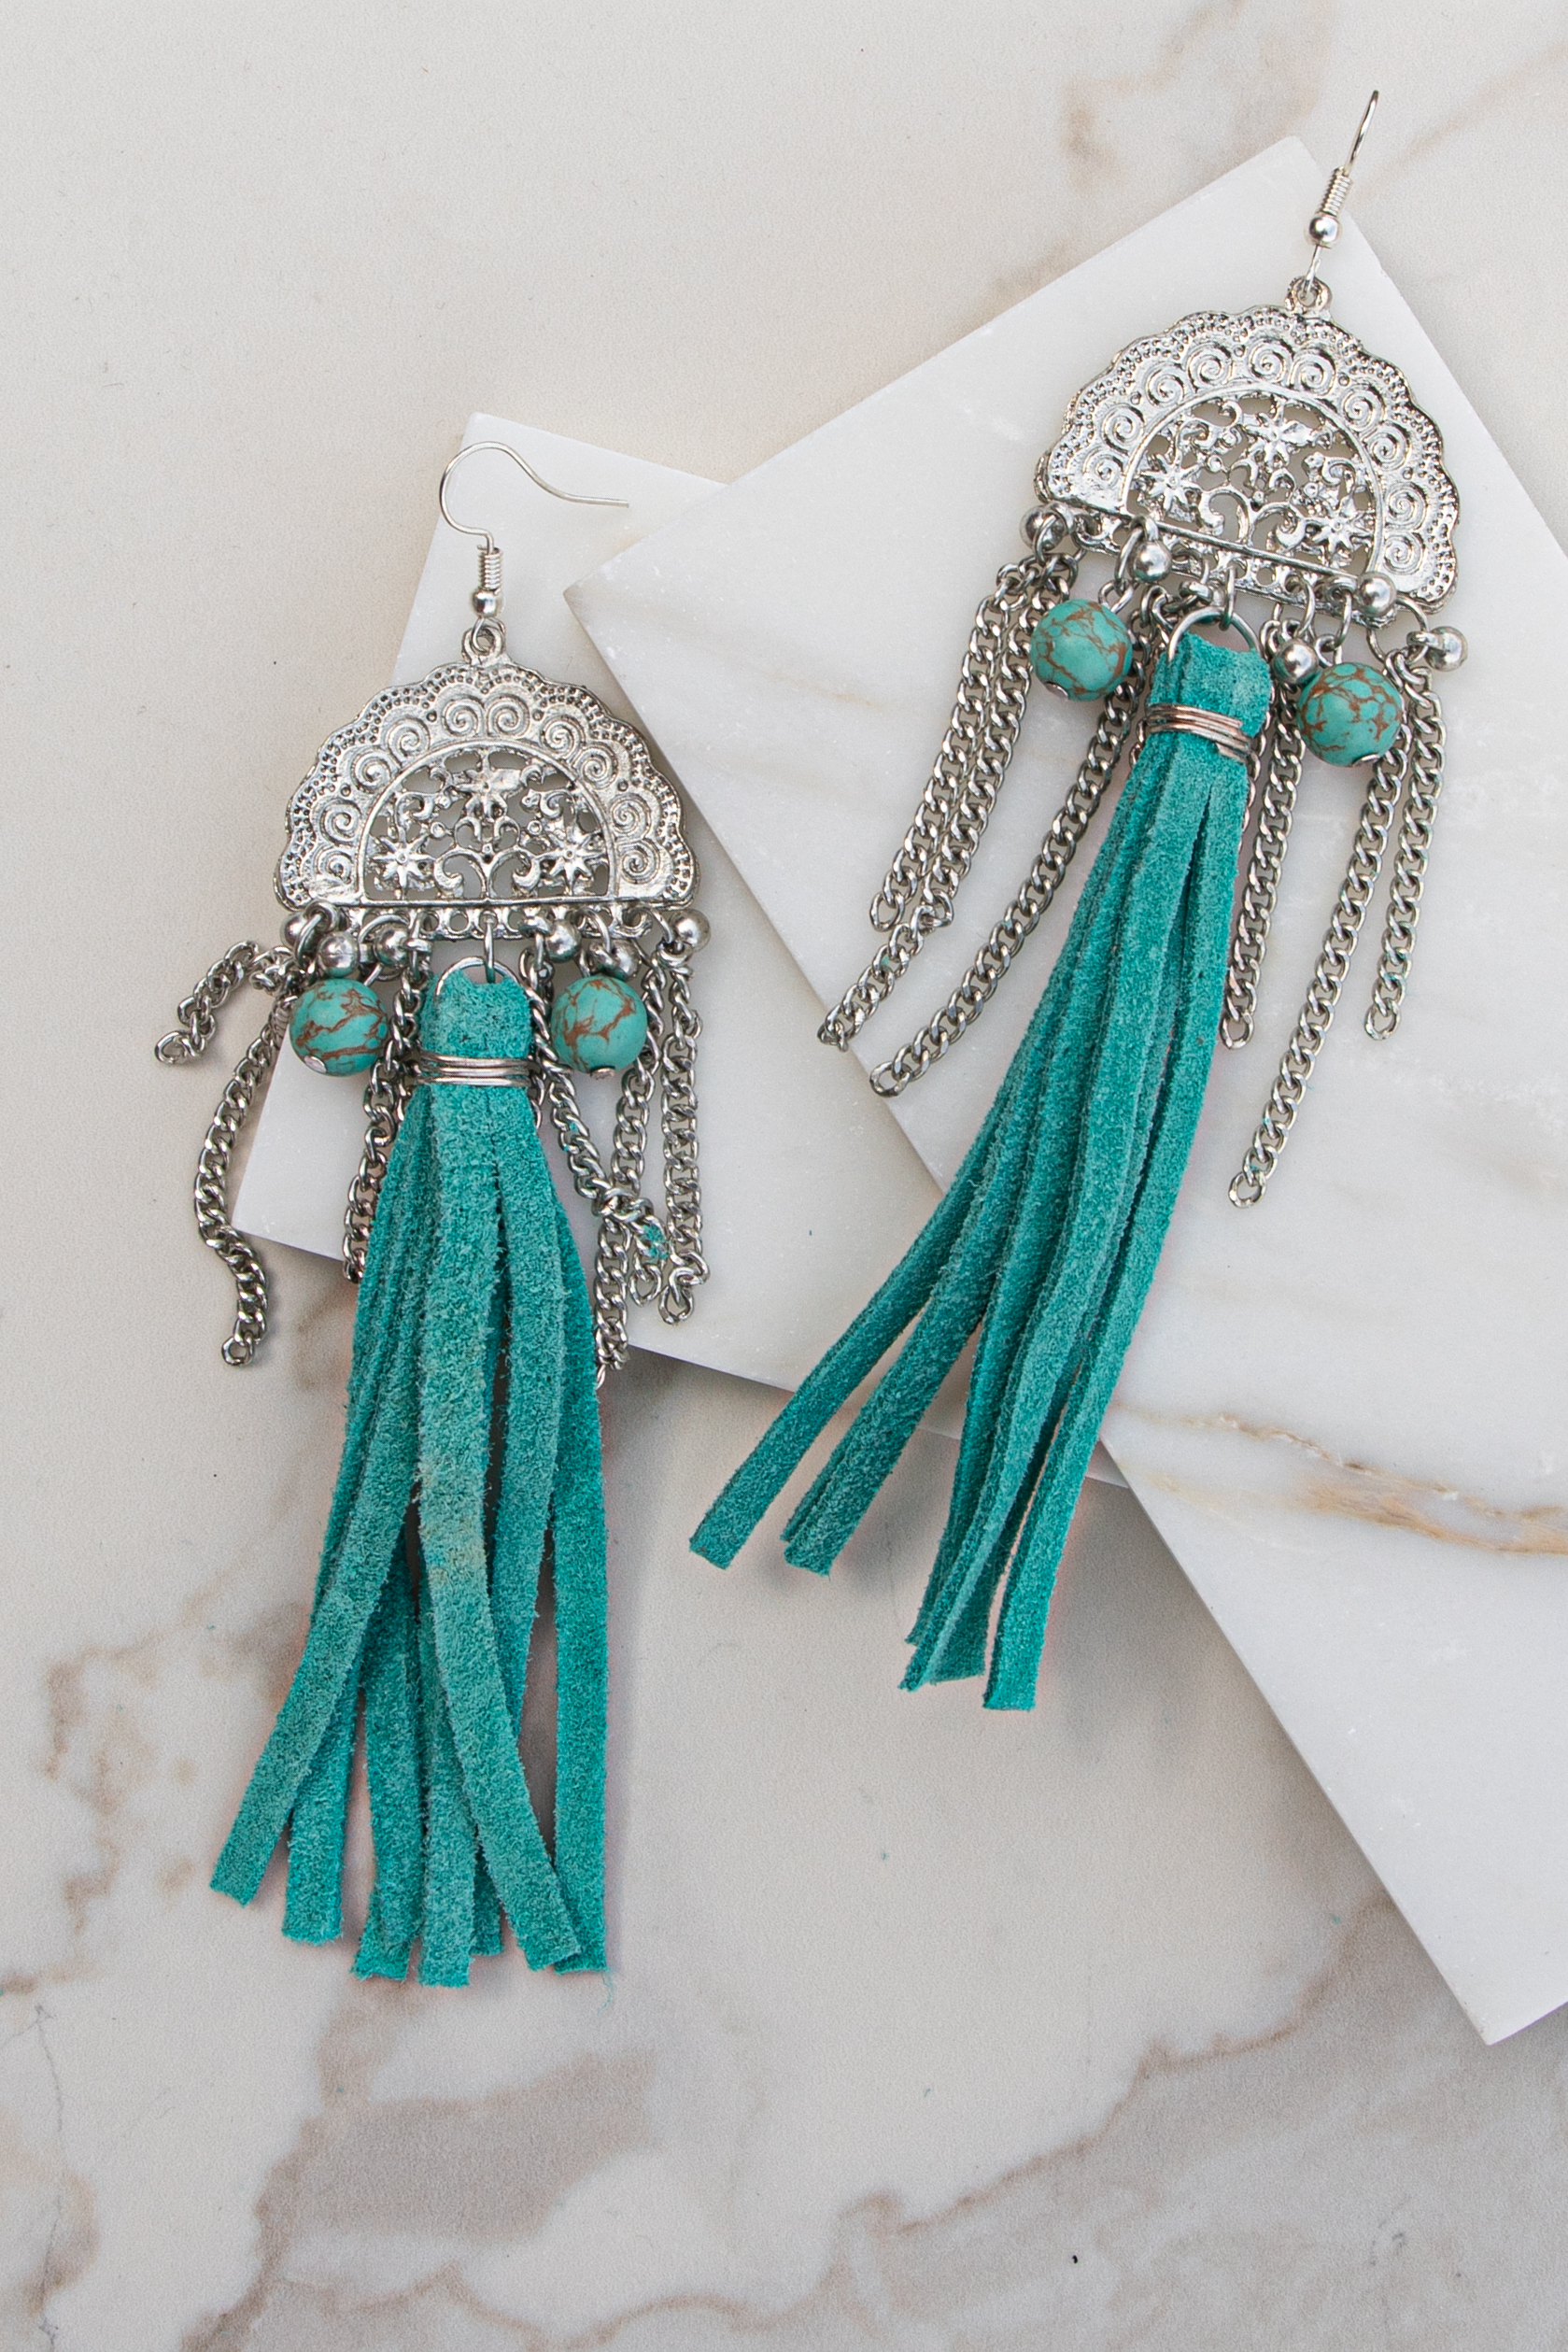 Silver and Teal Earrings with Bead and Faux Leather Details